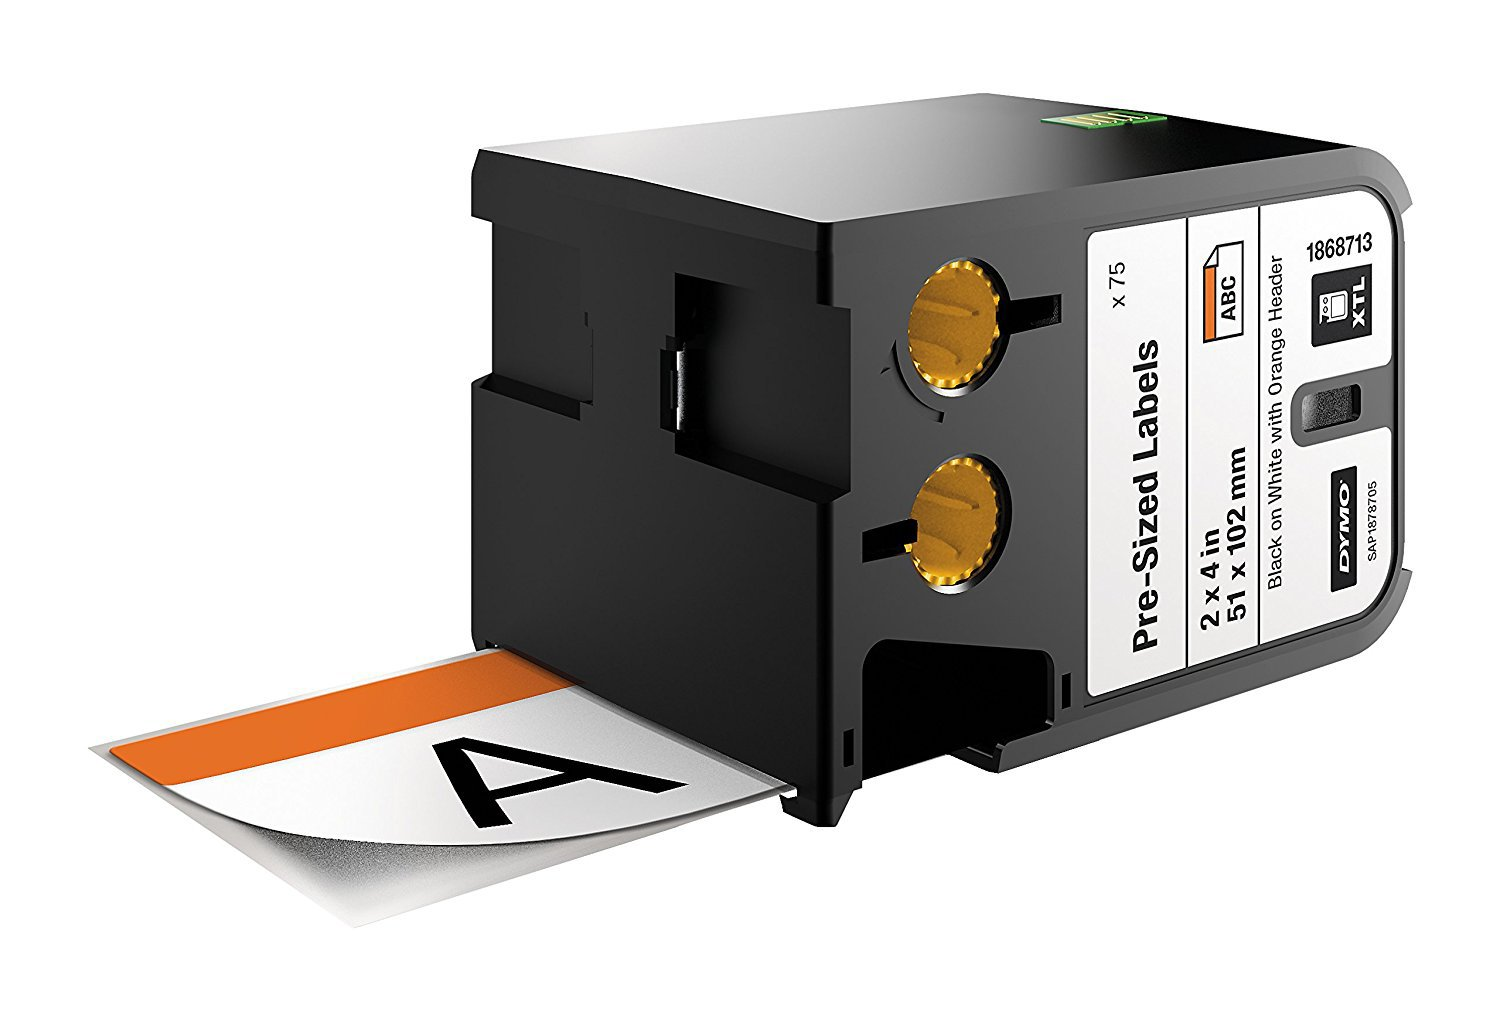 DYMO Industrial Pre-sized Safety Labels for DYMO XTL Label Makers, Black on White with Orange Header, 2''x4'', 1 Roll (1868719)